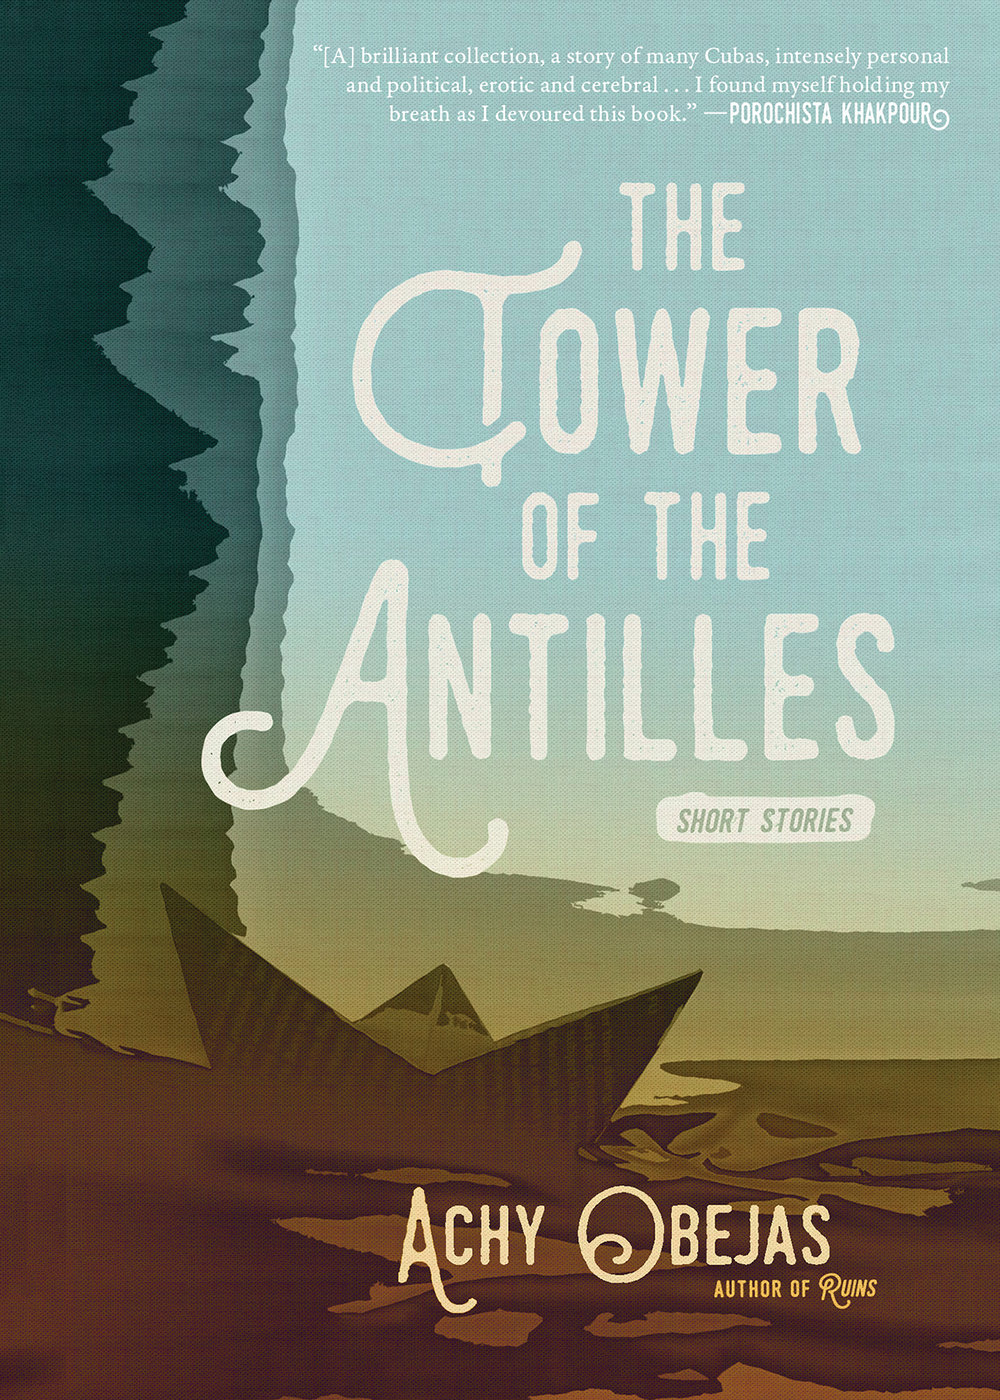 The Tower of the Antilles , Achy Obejas. Akashic Books, July 2017. 160 pp.